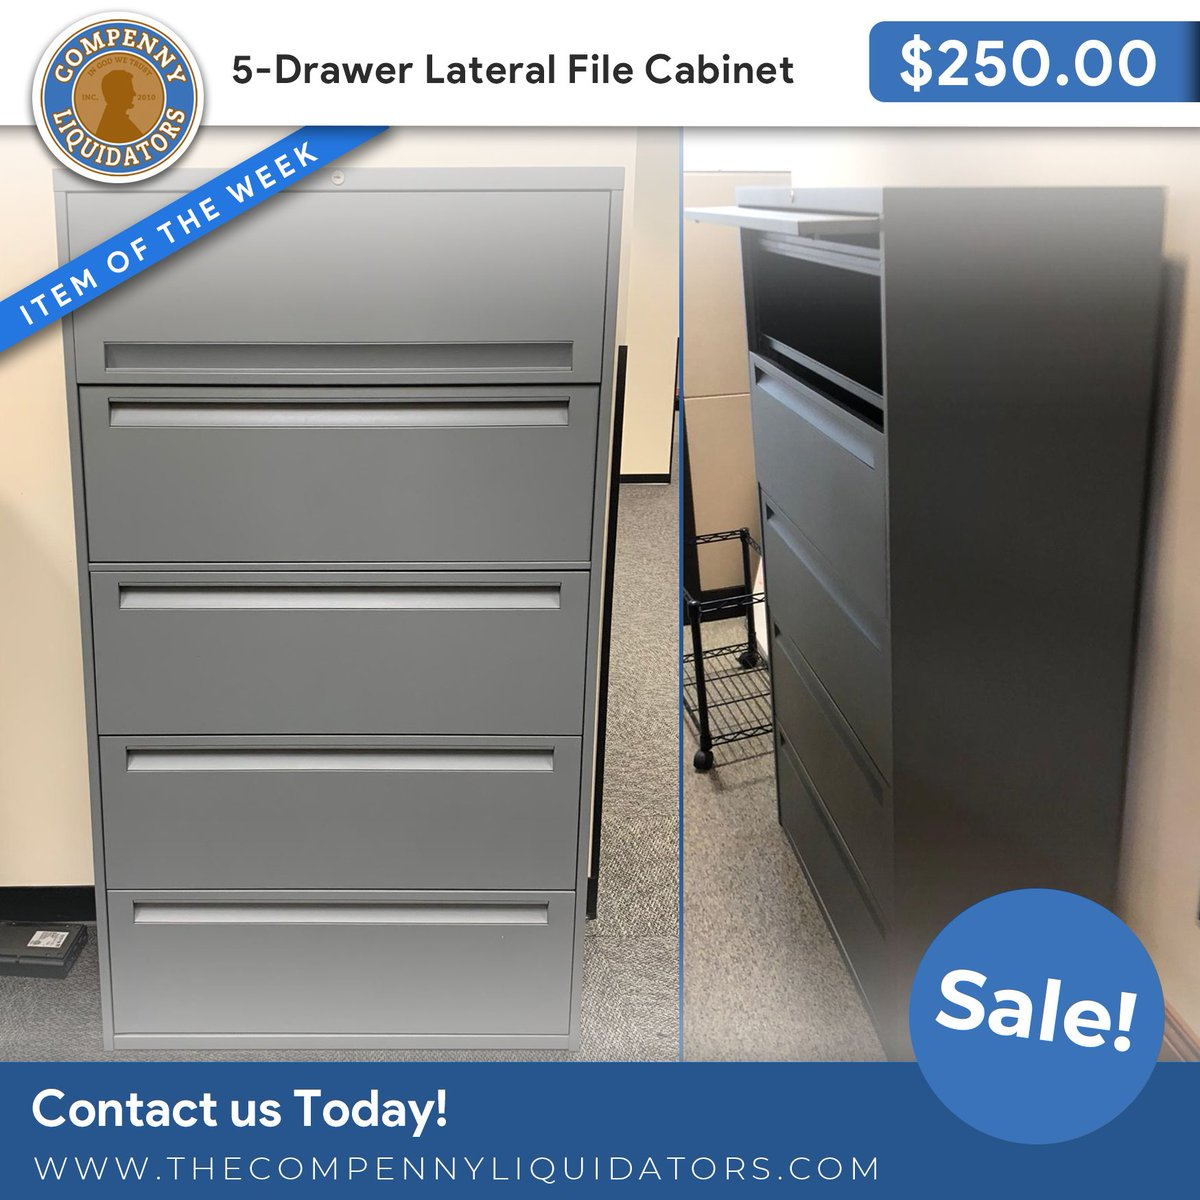 We extended our offer for one more week! Take advantage before we change our mind 😋 . . . #Work #OfficeWork #Office #Cubicle #Workplace #Business #SmallBusiness #SMB #Leadership #SocialBusiness #Furniture #OfficeFurniture #Miami #WorkSpace #Florida https://t.co/I7lkmE2XFo